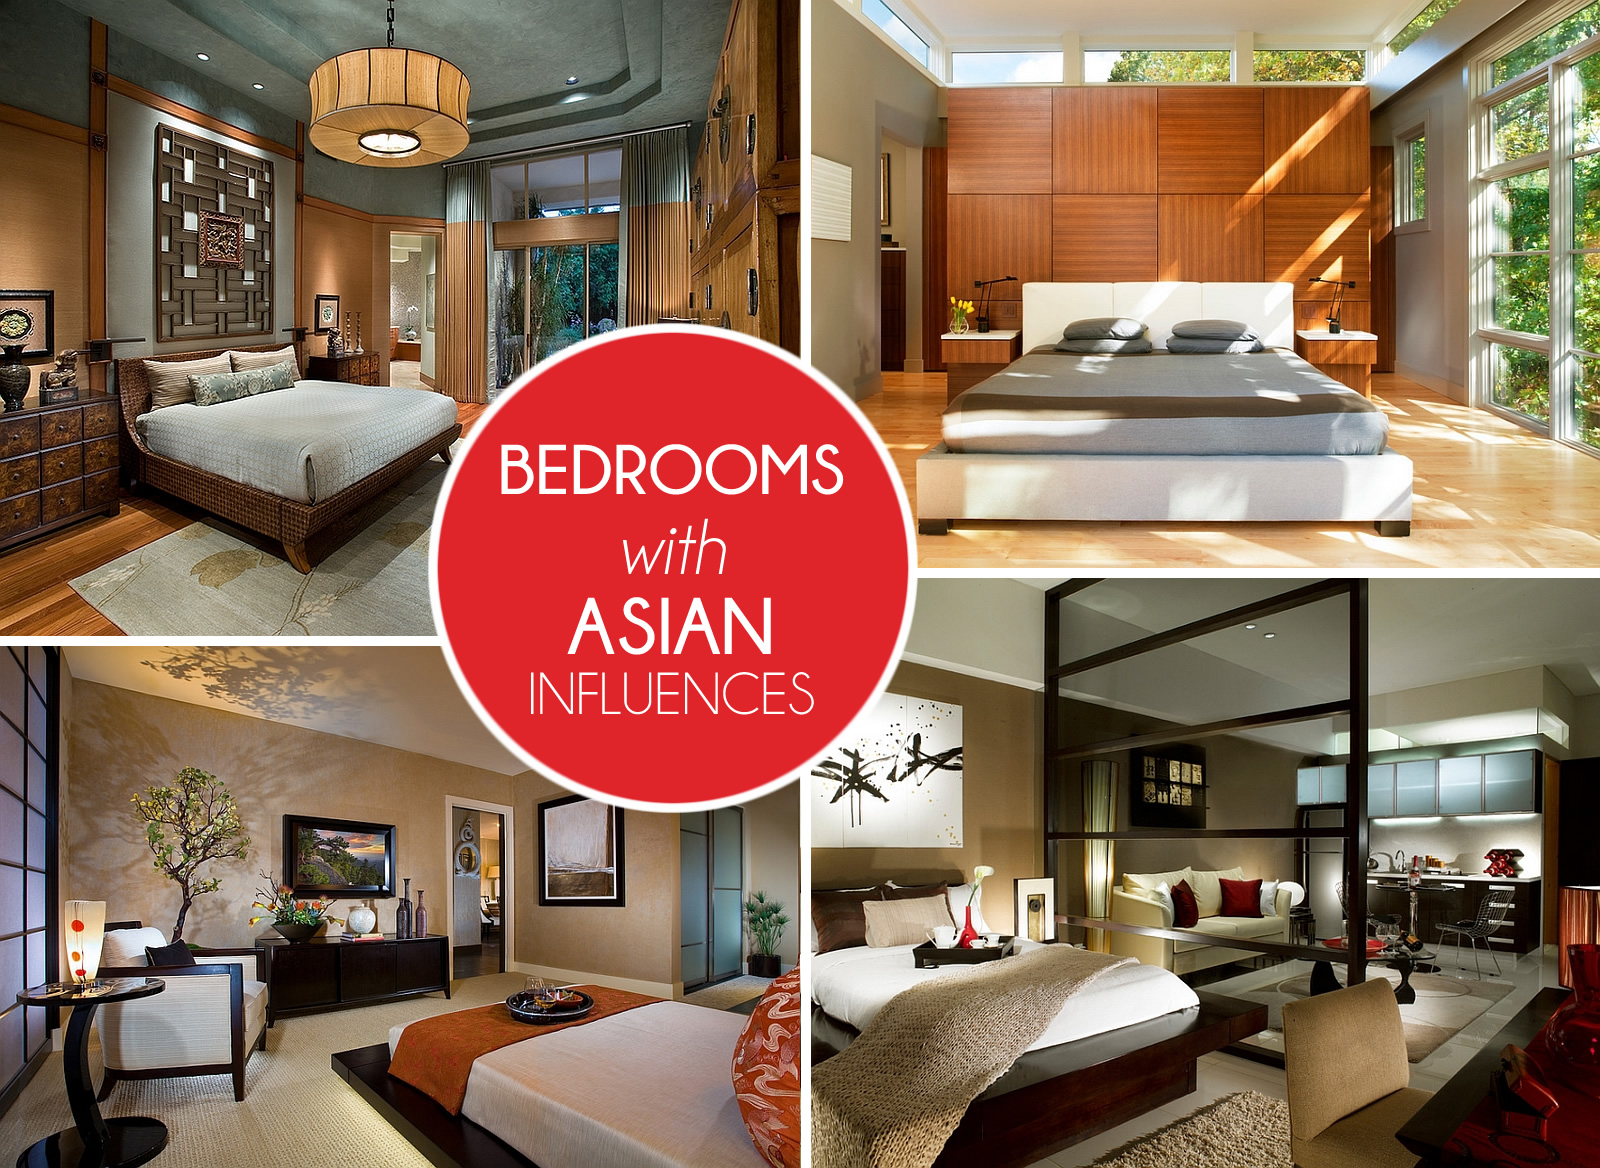 asian themed bedroom ideas photo - 1